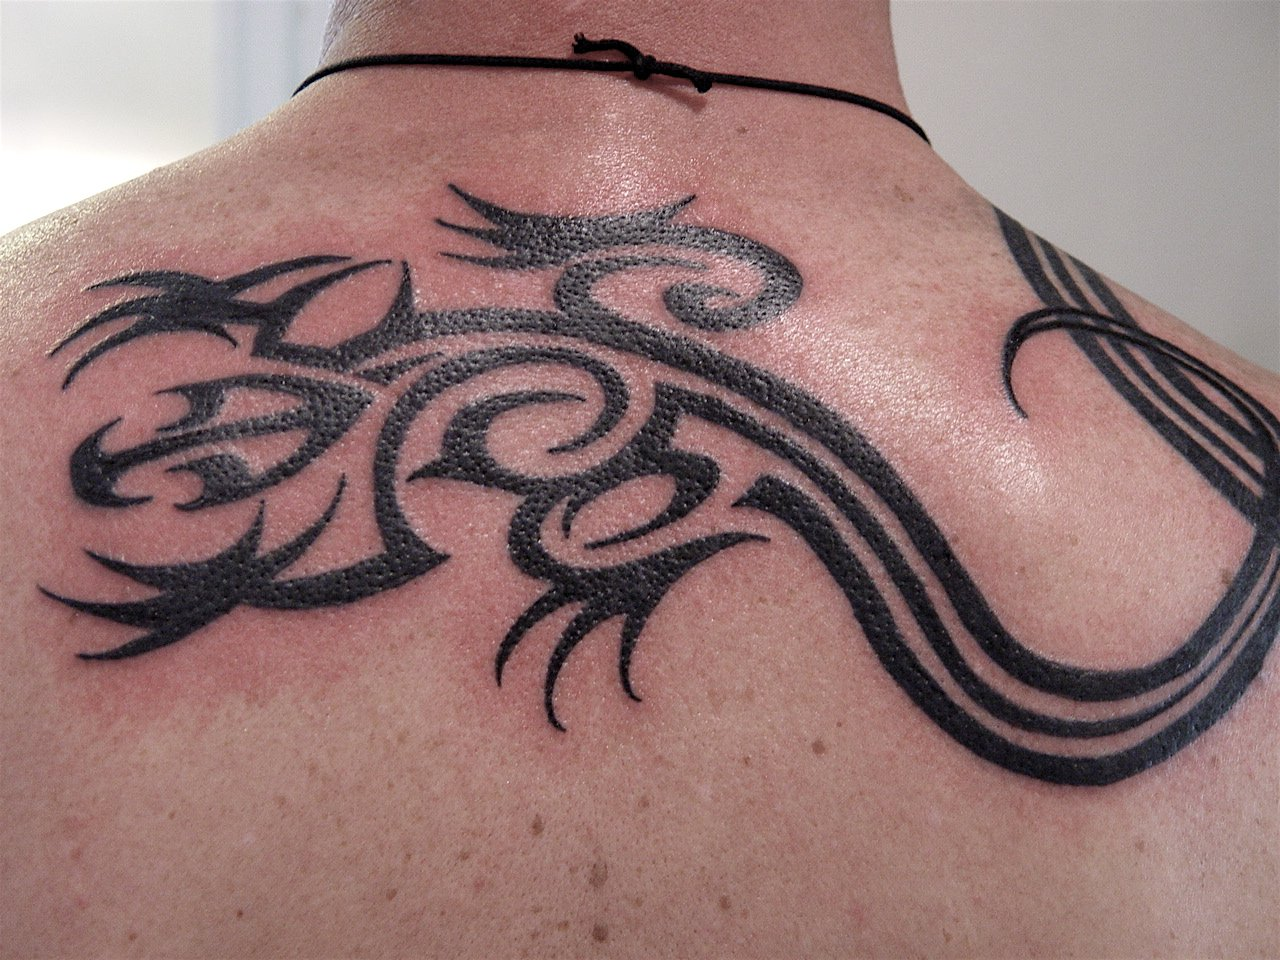 http://3.bp.blogspot.com/-YODsN7WC4B4/TnHV66ZVzHI/AAAAAAAAAY8/C2i5zh7ZjHA/s1600/lizard+tattoos+-free-tattooo.blogspot.com+-tribal-lizard-by-ron-hendon-midnight-iguanatattoo.jpg